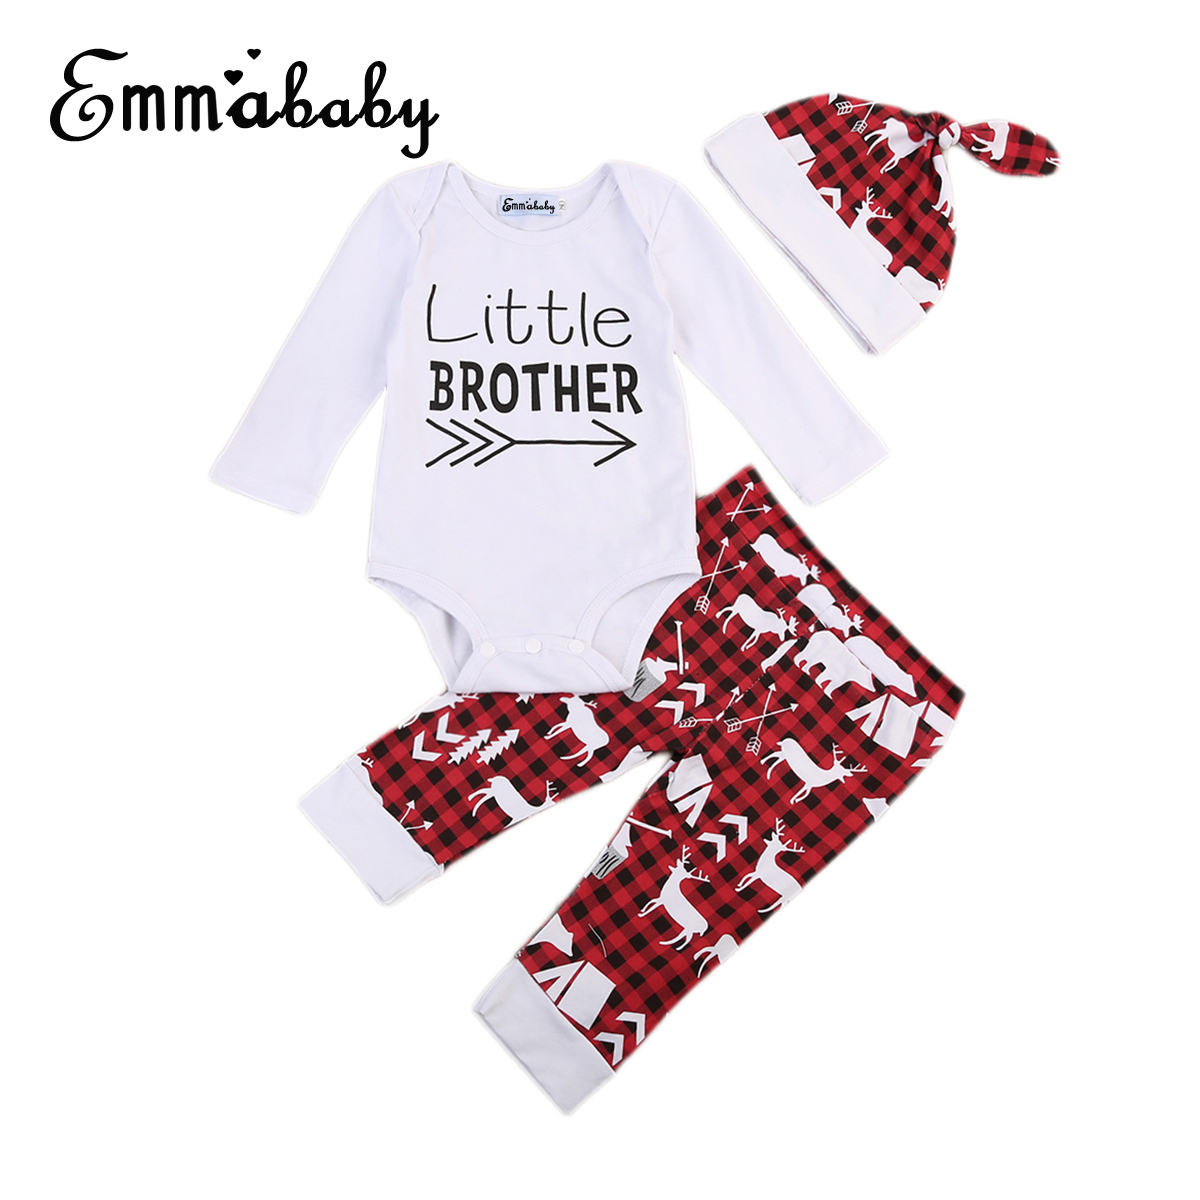 Babies Romper Long Sleeve Little Brother Baby Boy Outfits Clothes Newborn Romper Pants Hat 3pcs Set